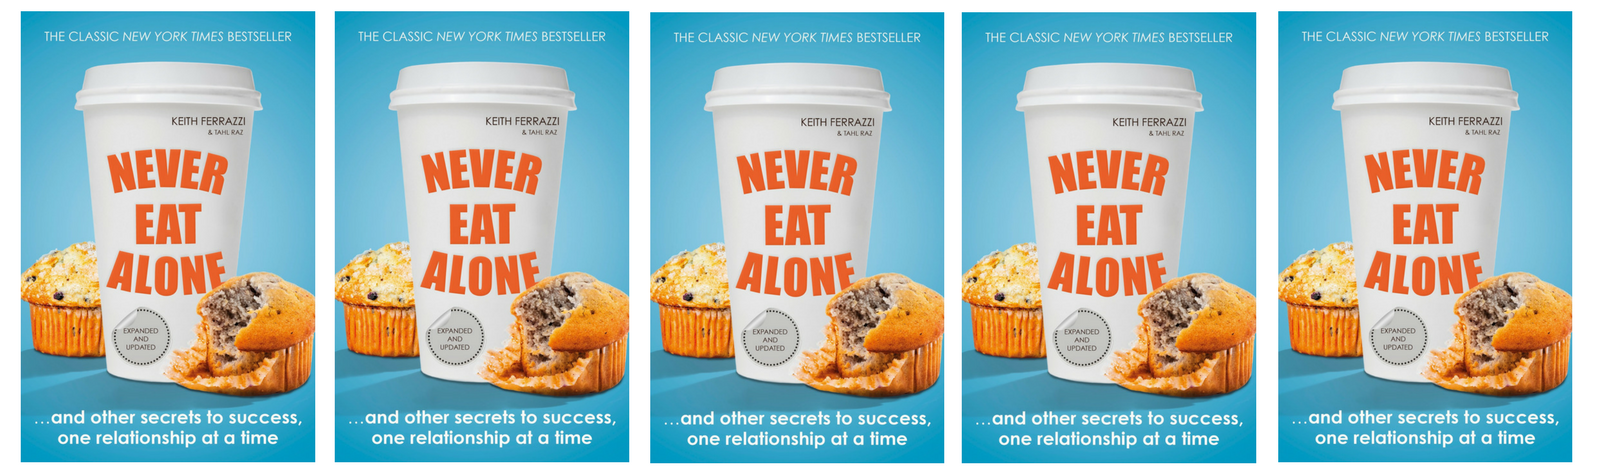 READ THIS: Never Eat Alone